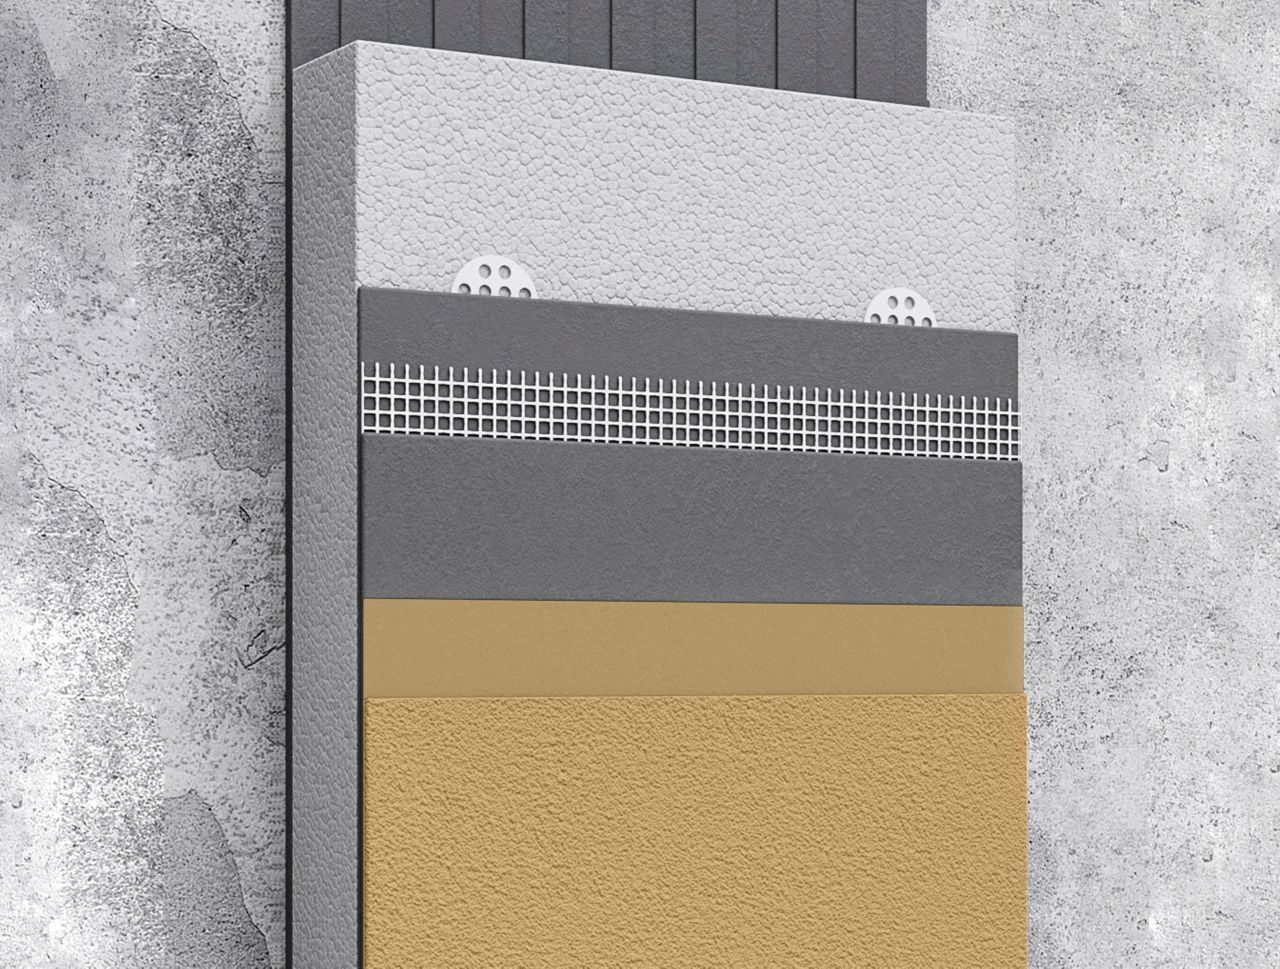 Thermal Insulation applied on facade